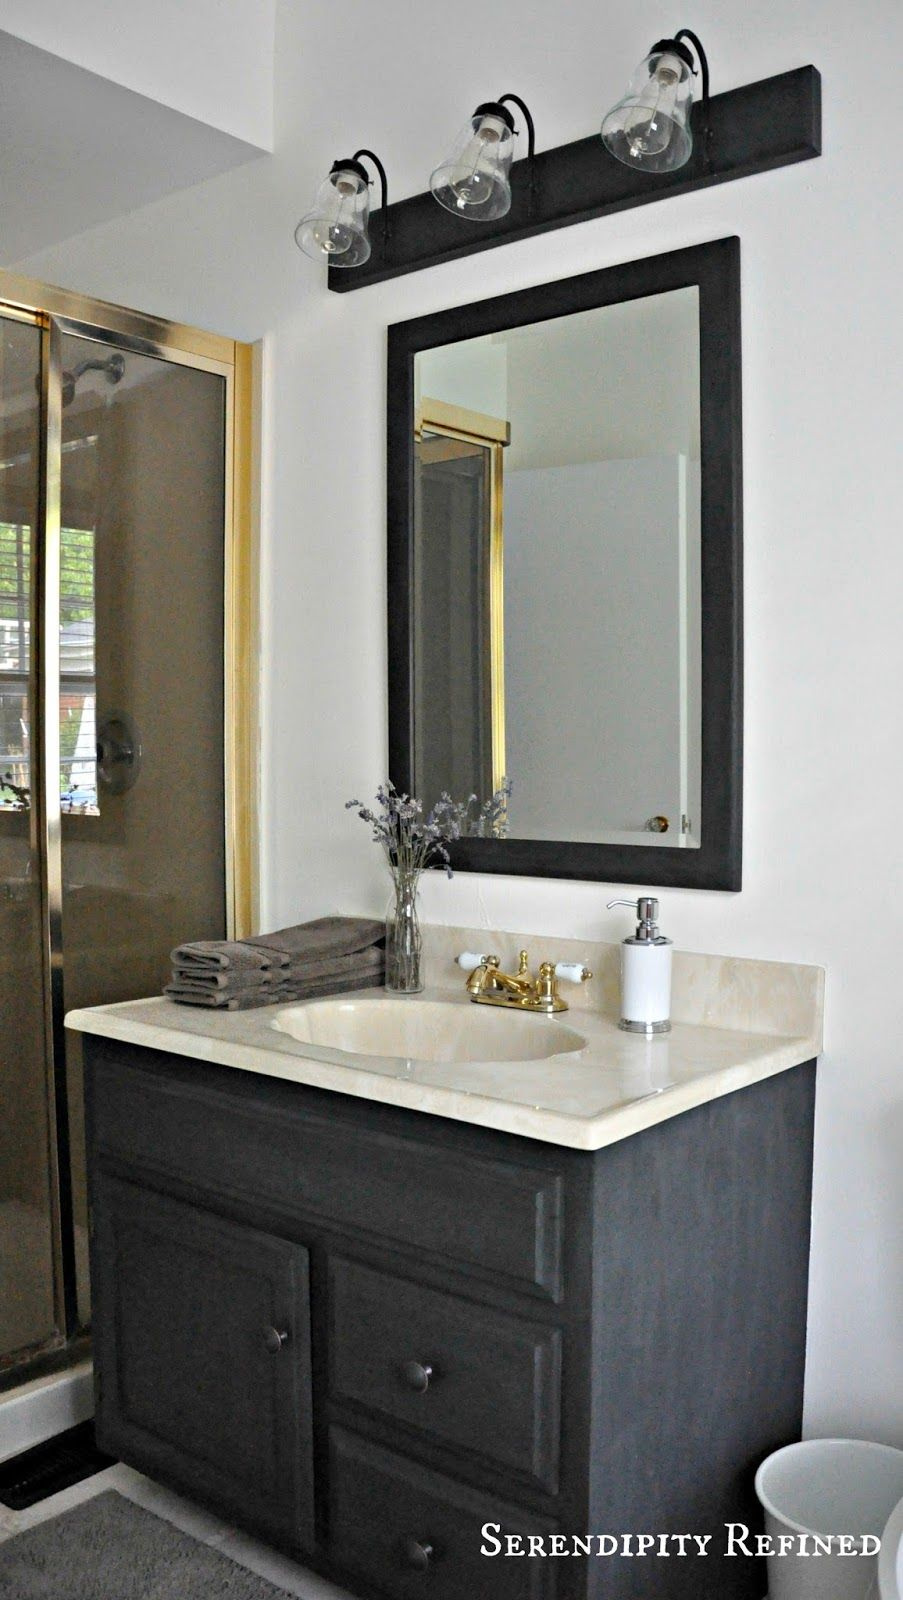 Serendipity Refined How To Update Oak And Brass Bathroom Fixtures - Can you spray paint bathroom fixtures